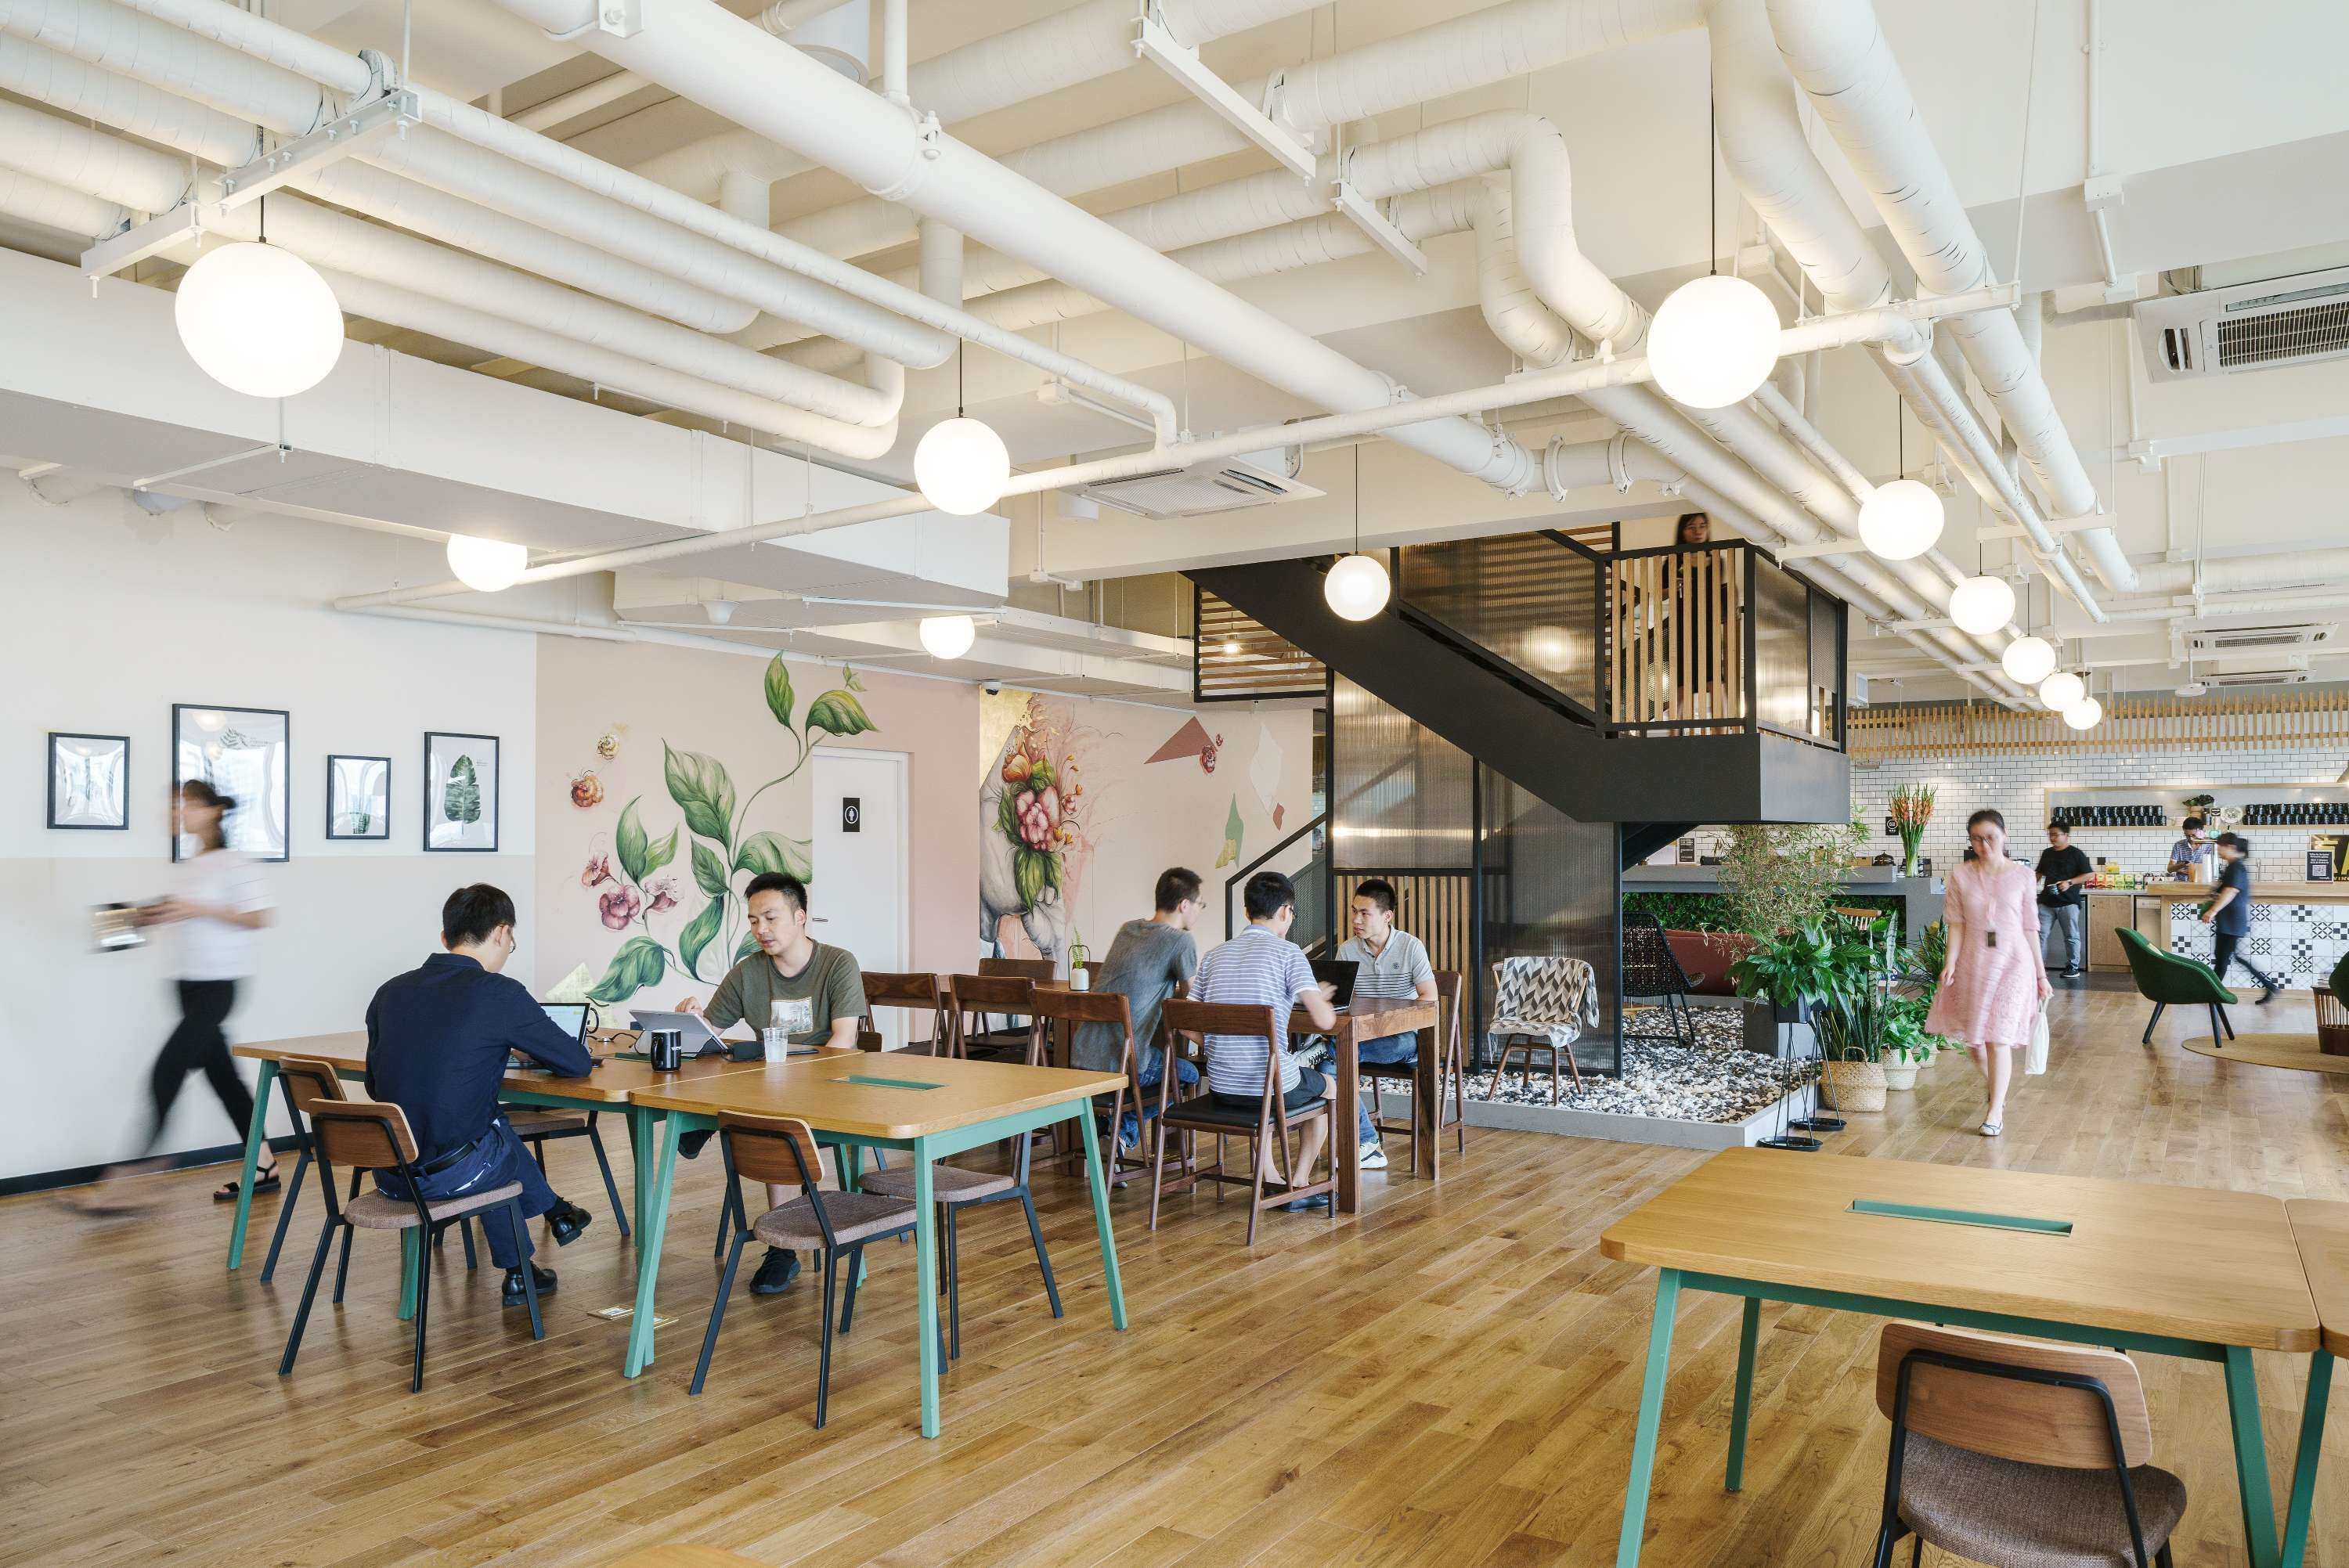 Wework Marylebone Available Now Through Findaservicedoffice Com Prices Starting From Private Office 1 080 Mo Ded Flexible Work Space Home Interior Design